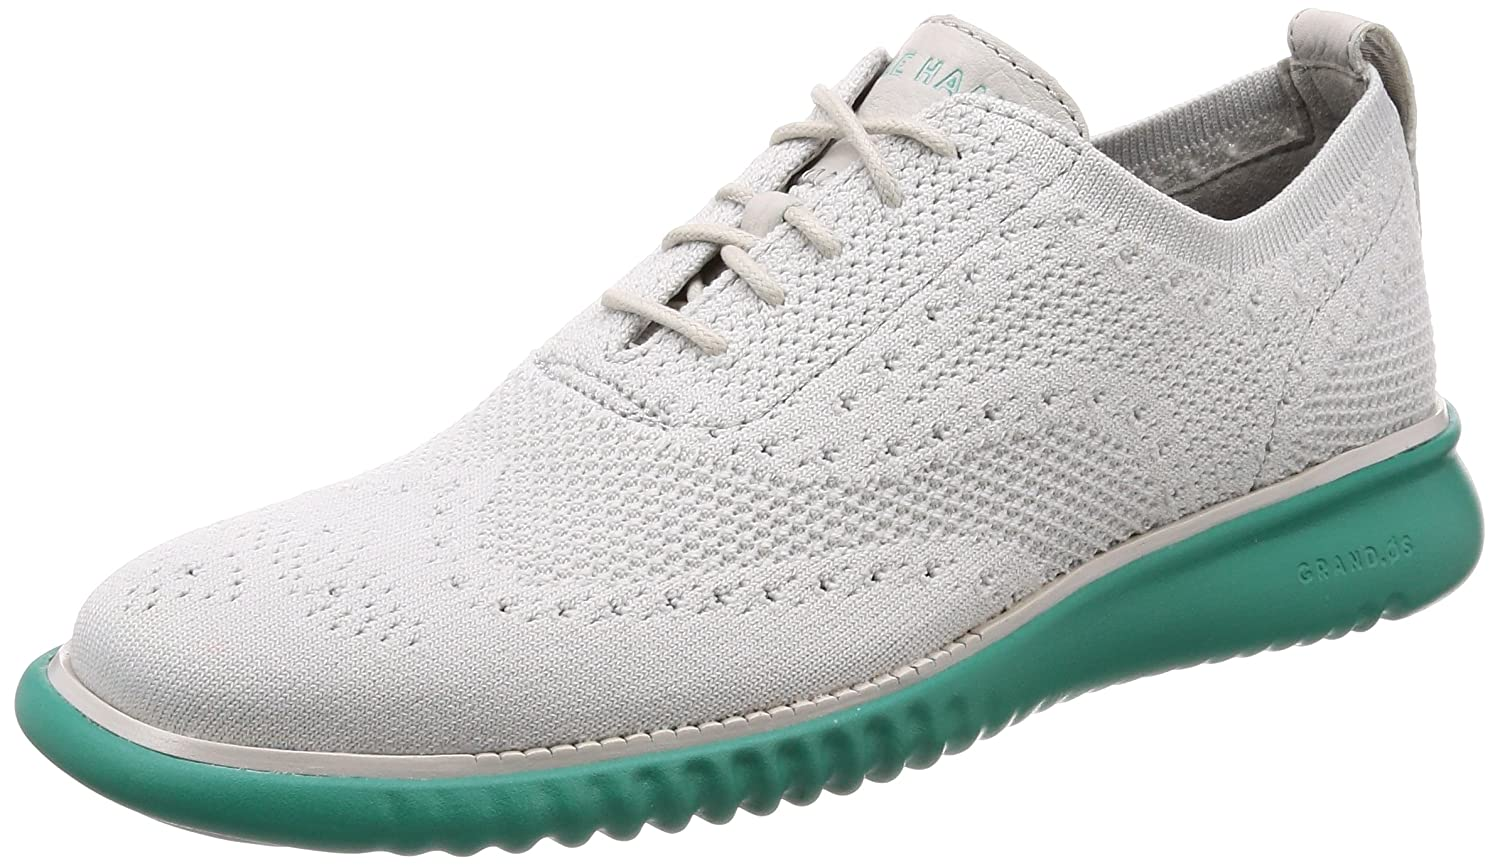 Vapour Grey Cole Haan Mens 2.Zerogrand Stitchlite Sneaker Sneakers